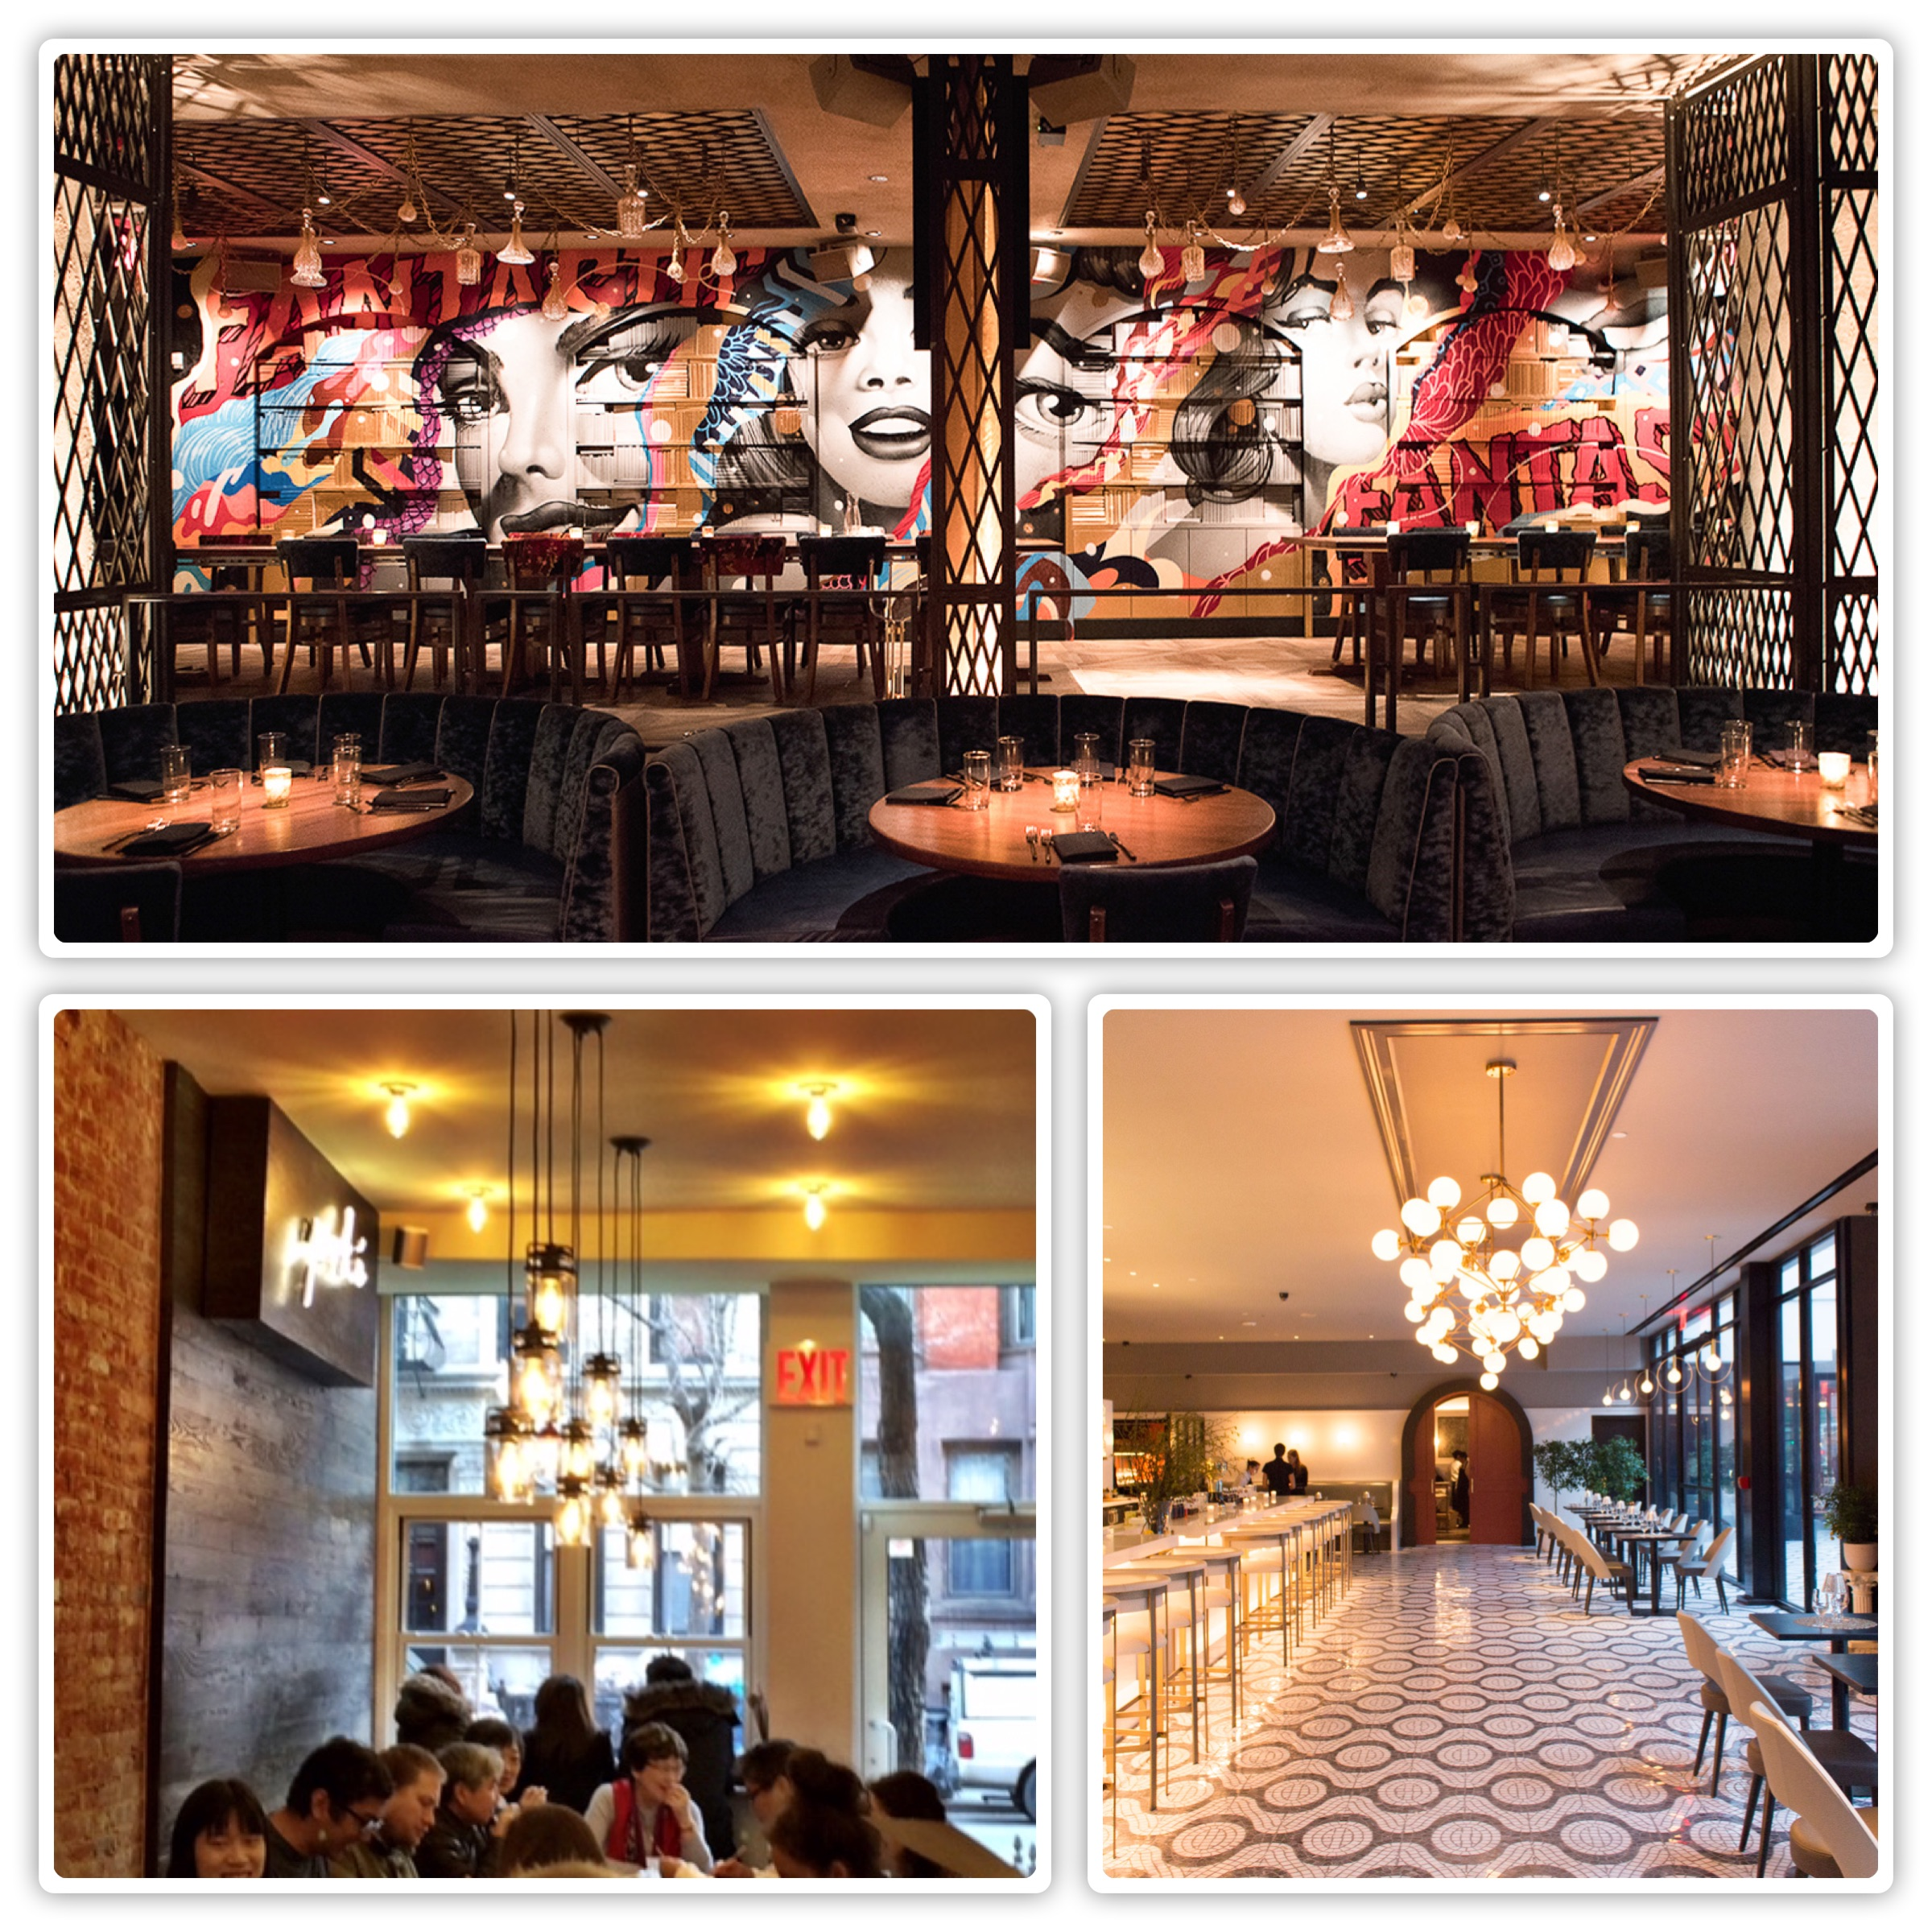 Restraurants: 3 Hottest New Dining Spots In NYC: Vandal, La Sirena And